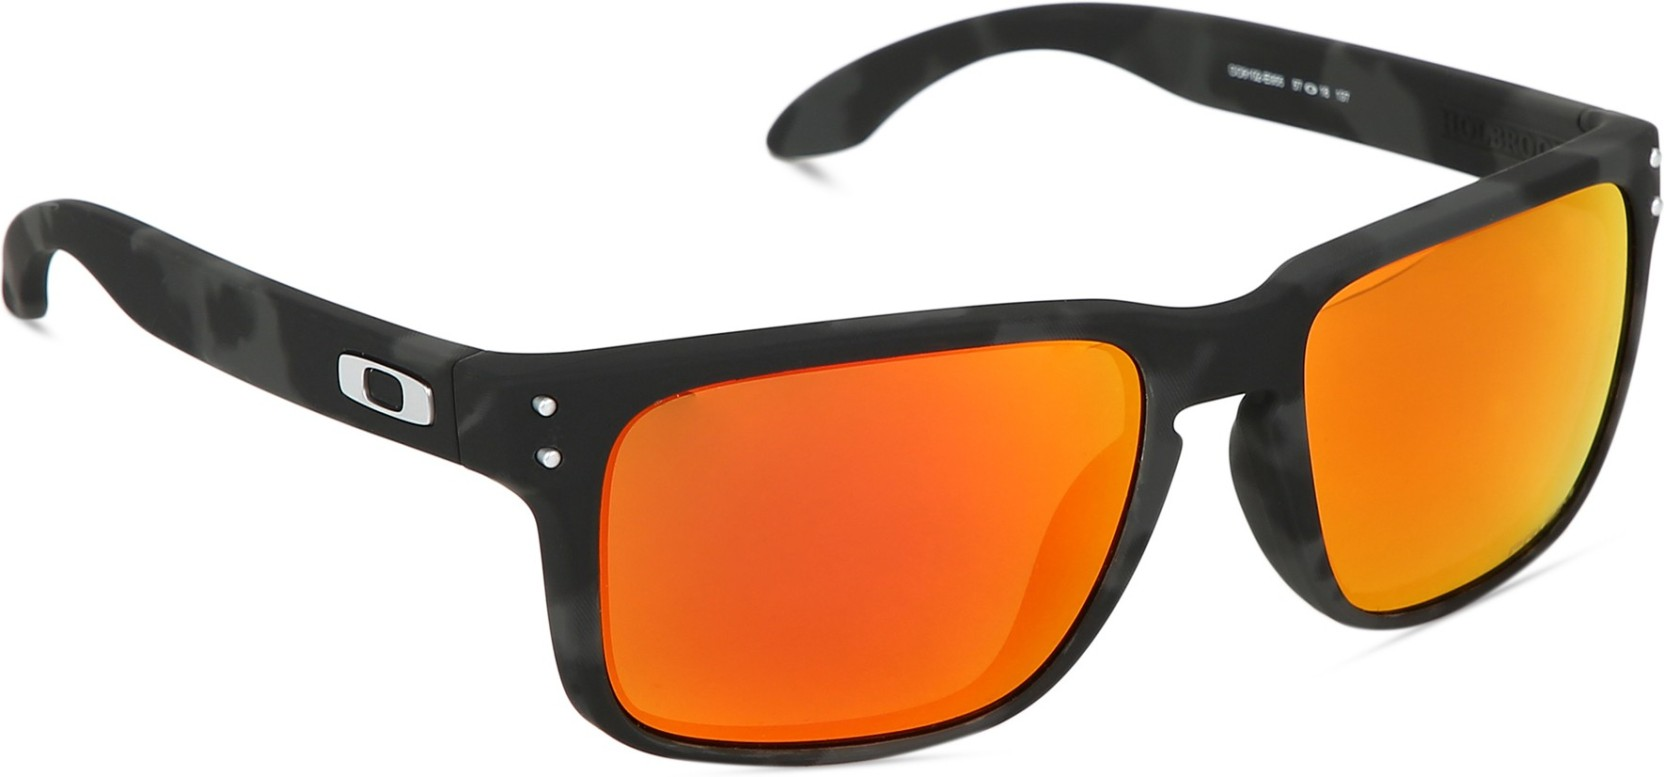 2d6a0eac19 Buy Oakley HOLBROOK Retro Square Sunglass Red For Men   Women Online ...